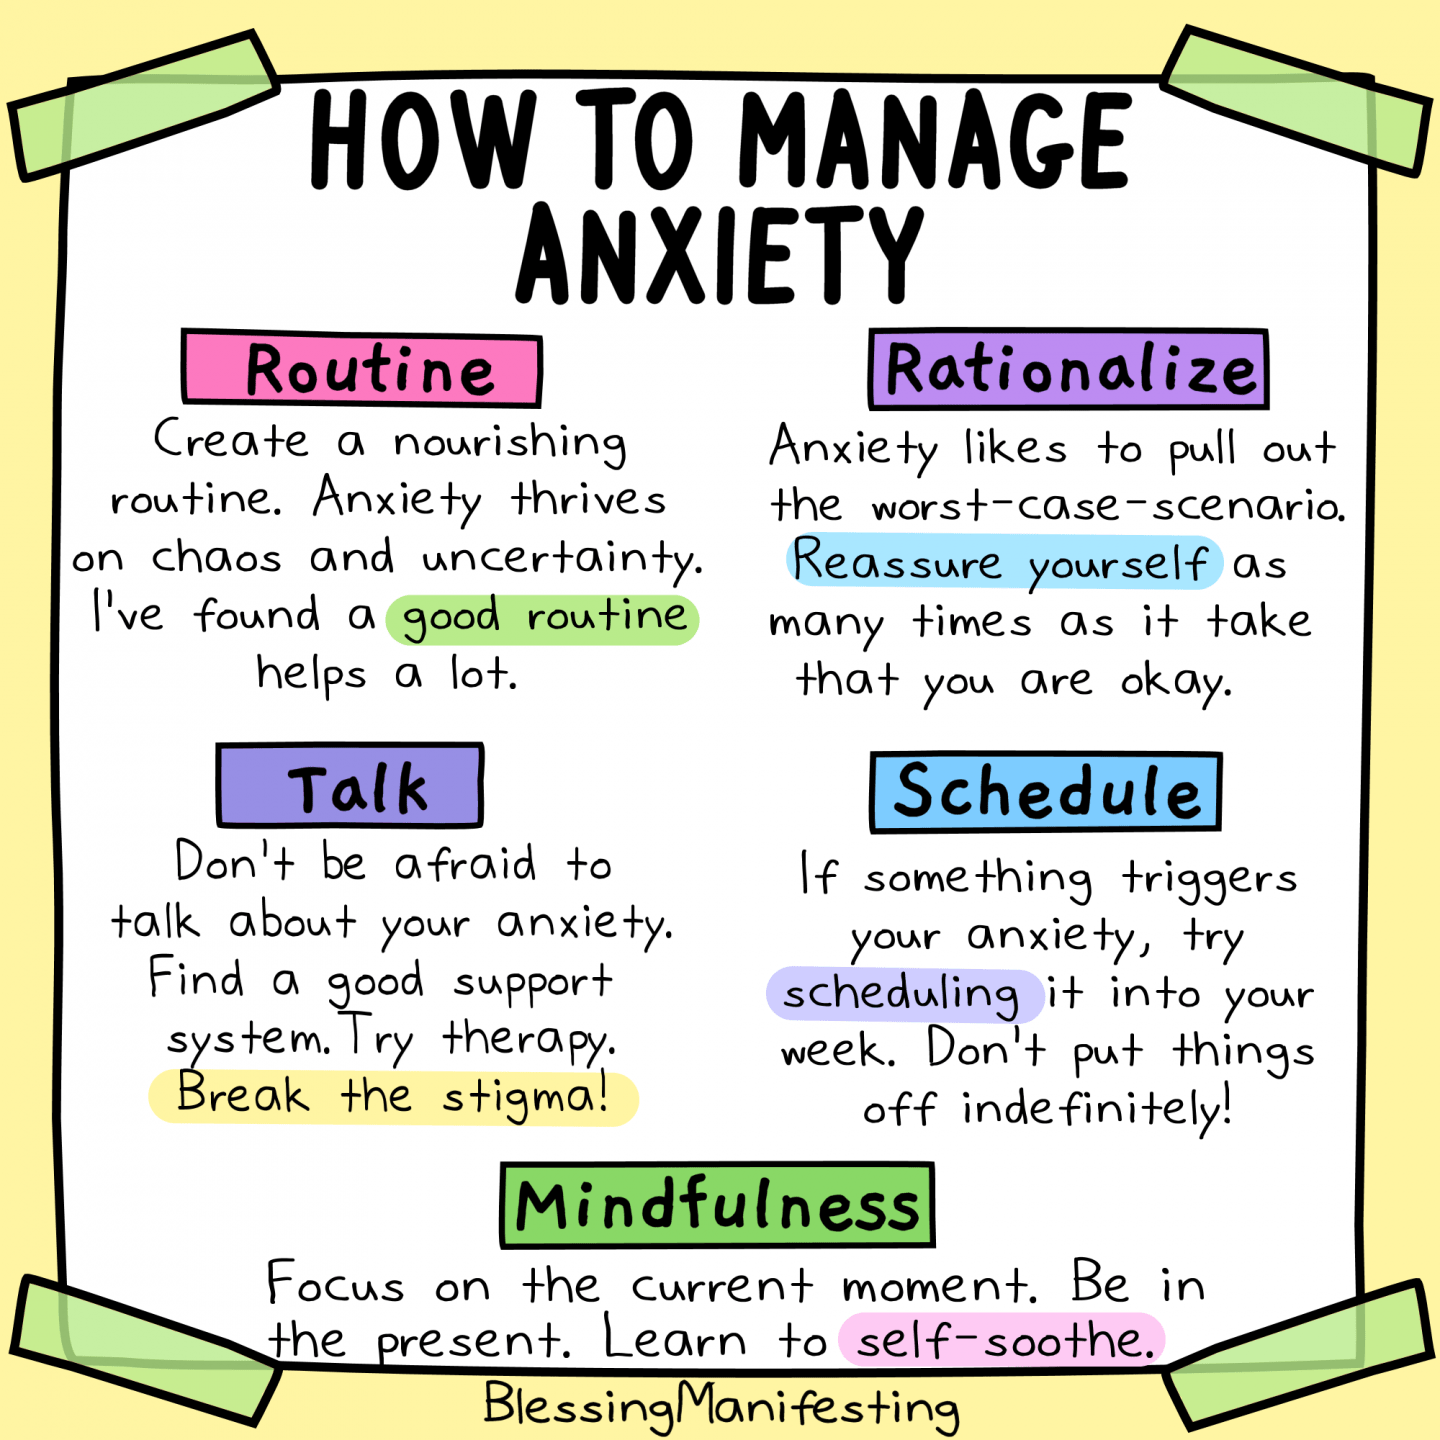 How To Manage Anxiety